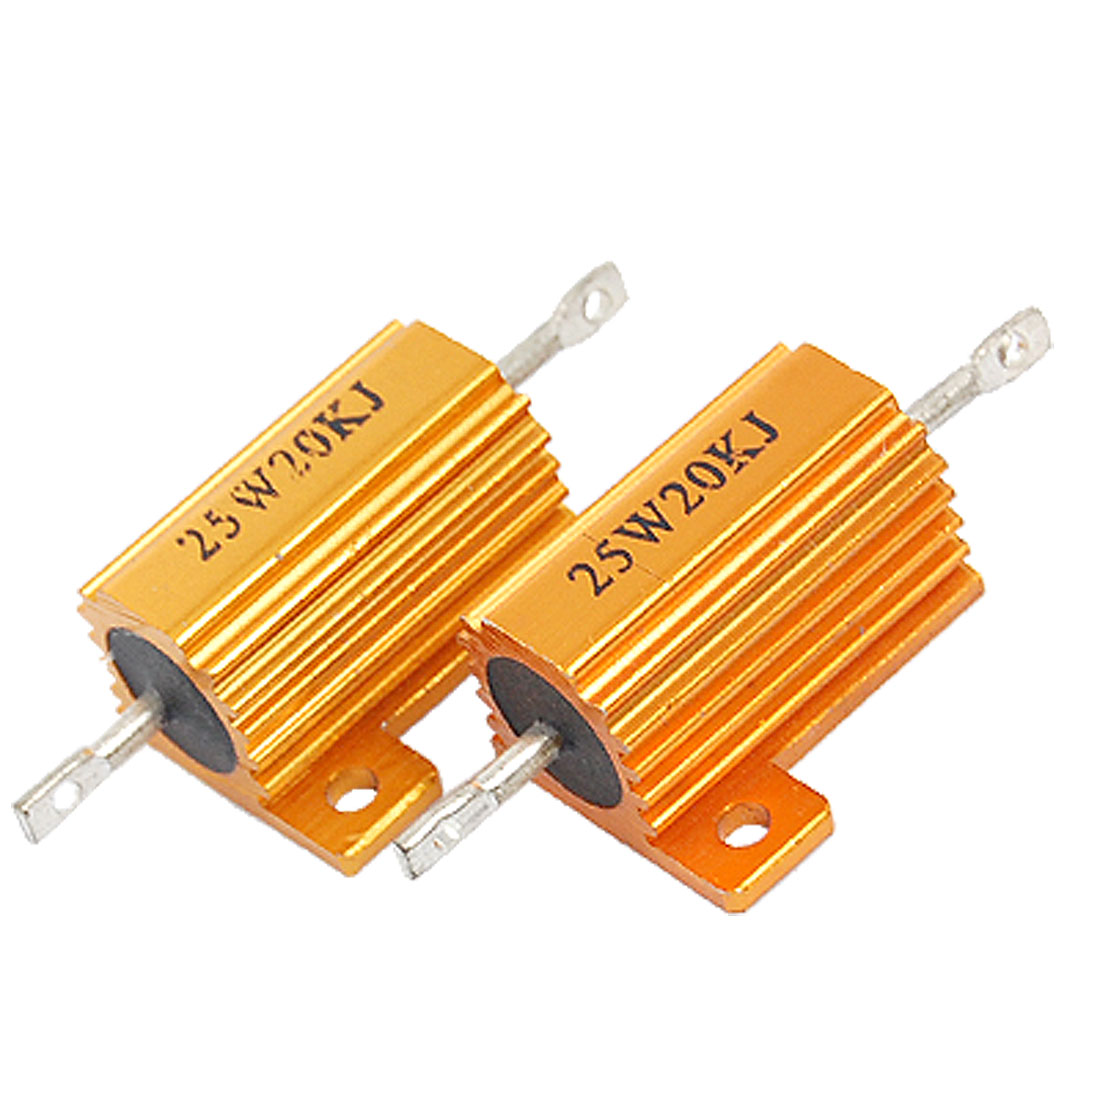 2 Pcs Chasis Mounted 25W 20K Ohm 5% Aluminum Case Wirewound Resistors